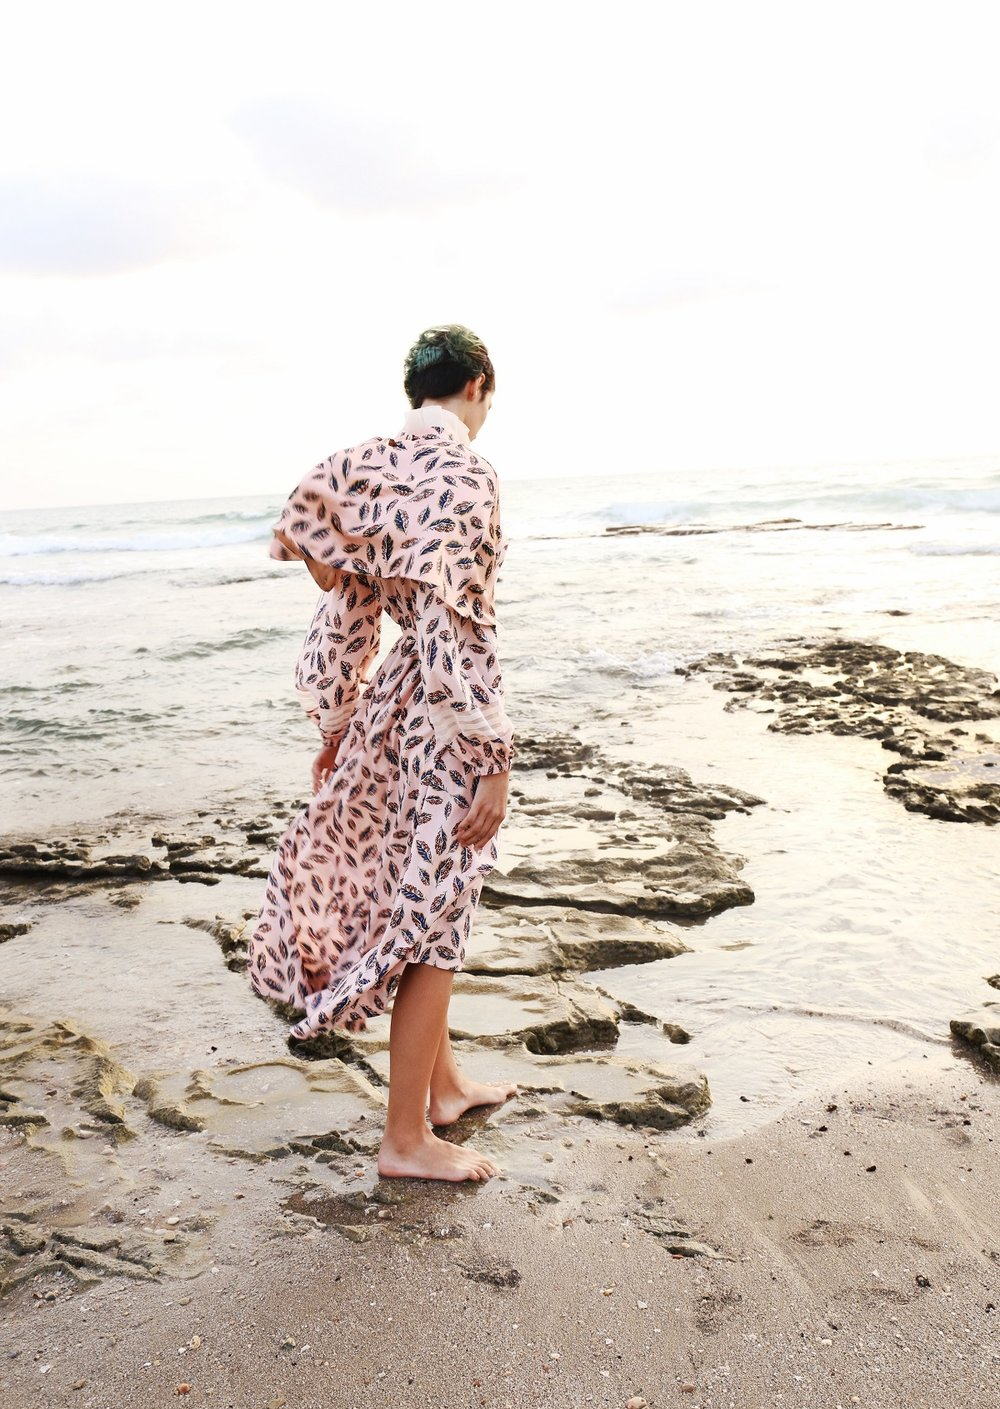 THE CAPE - This romantic element carries undeniable power. We call it Soft Power.